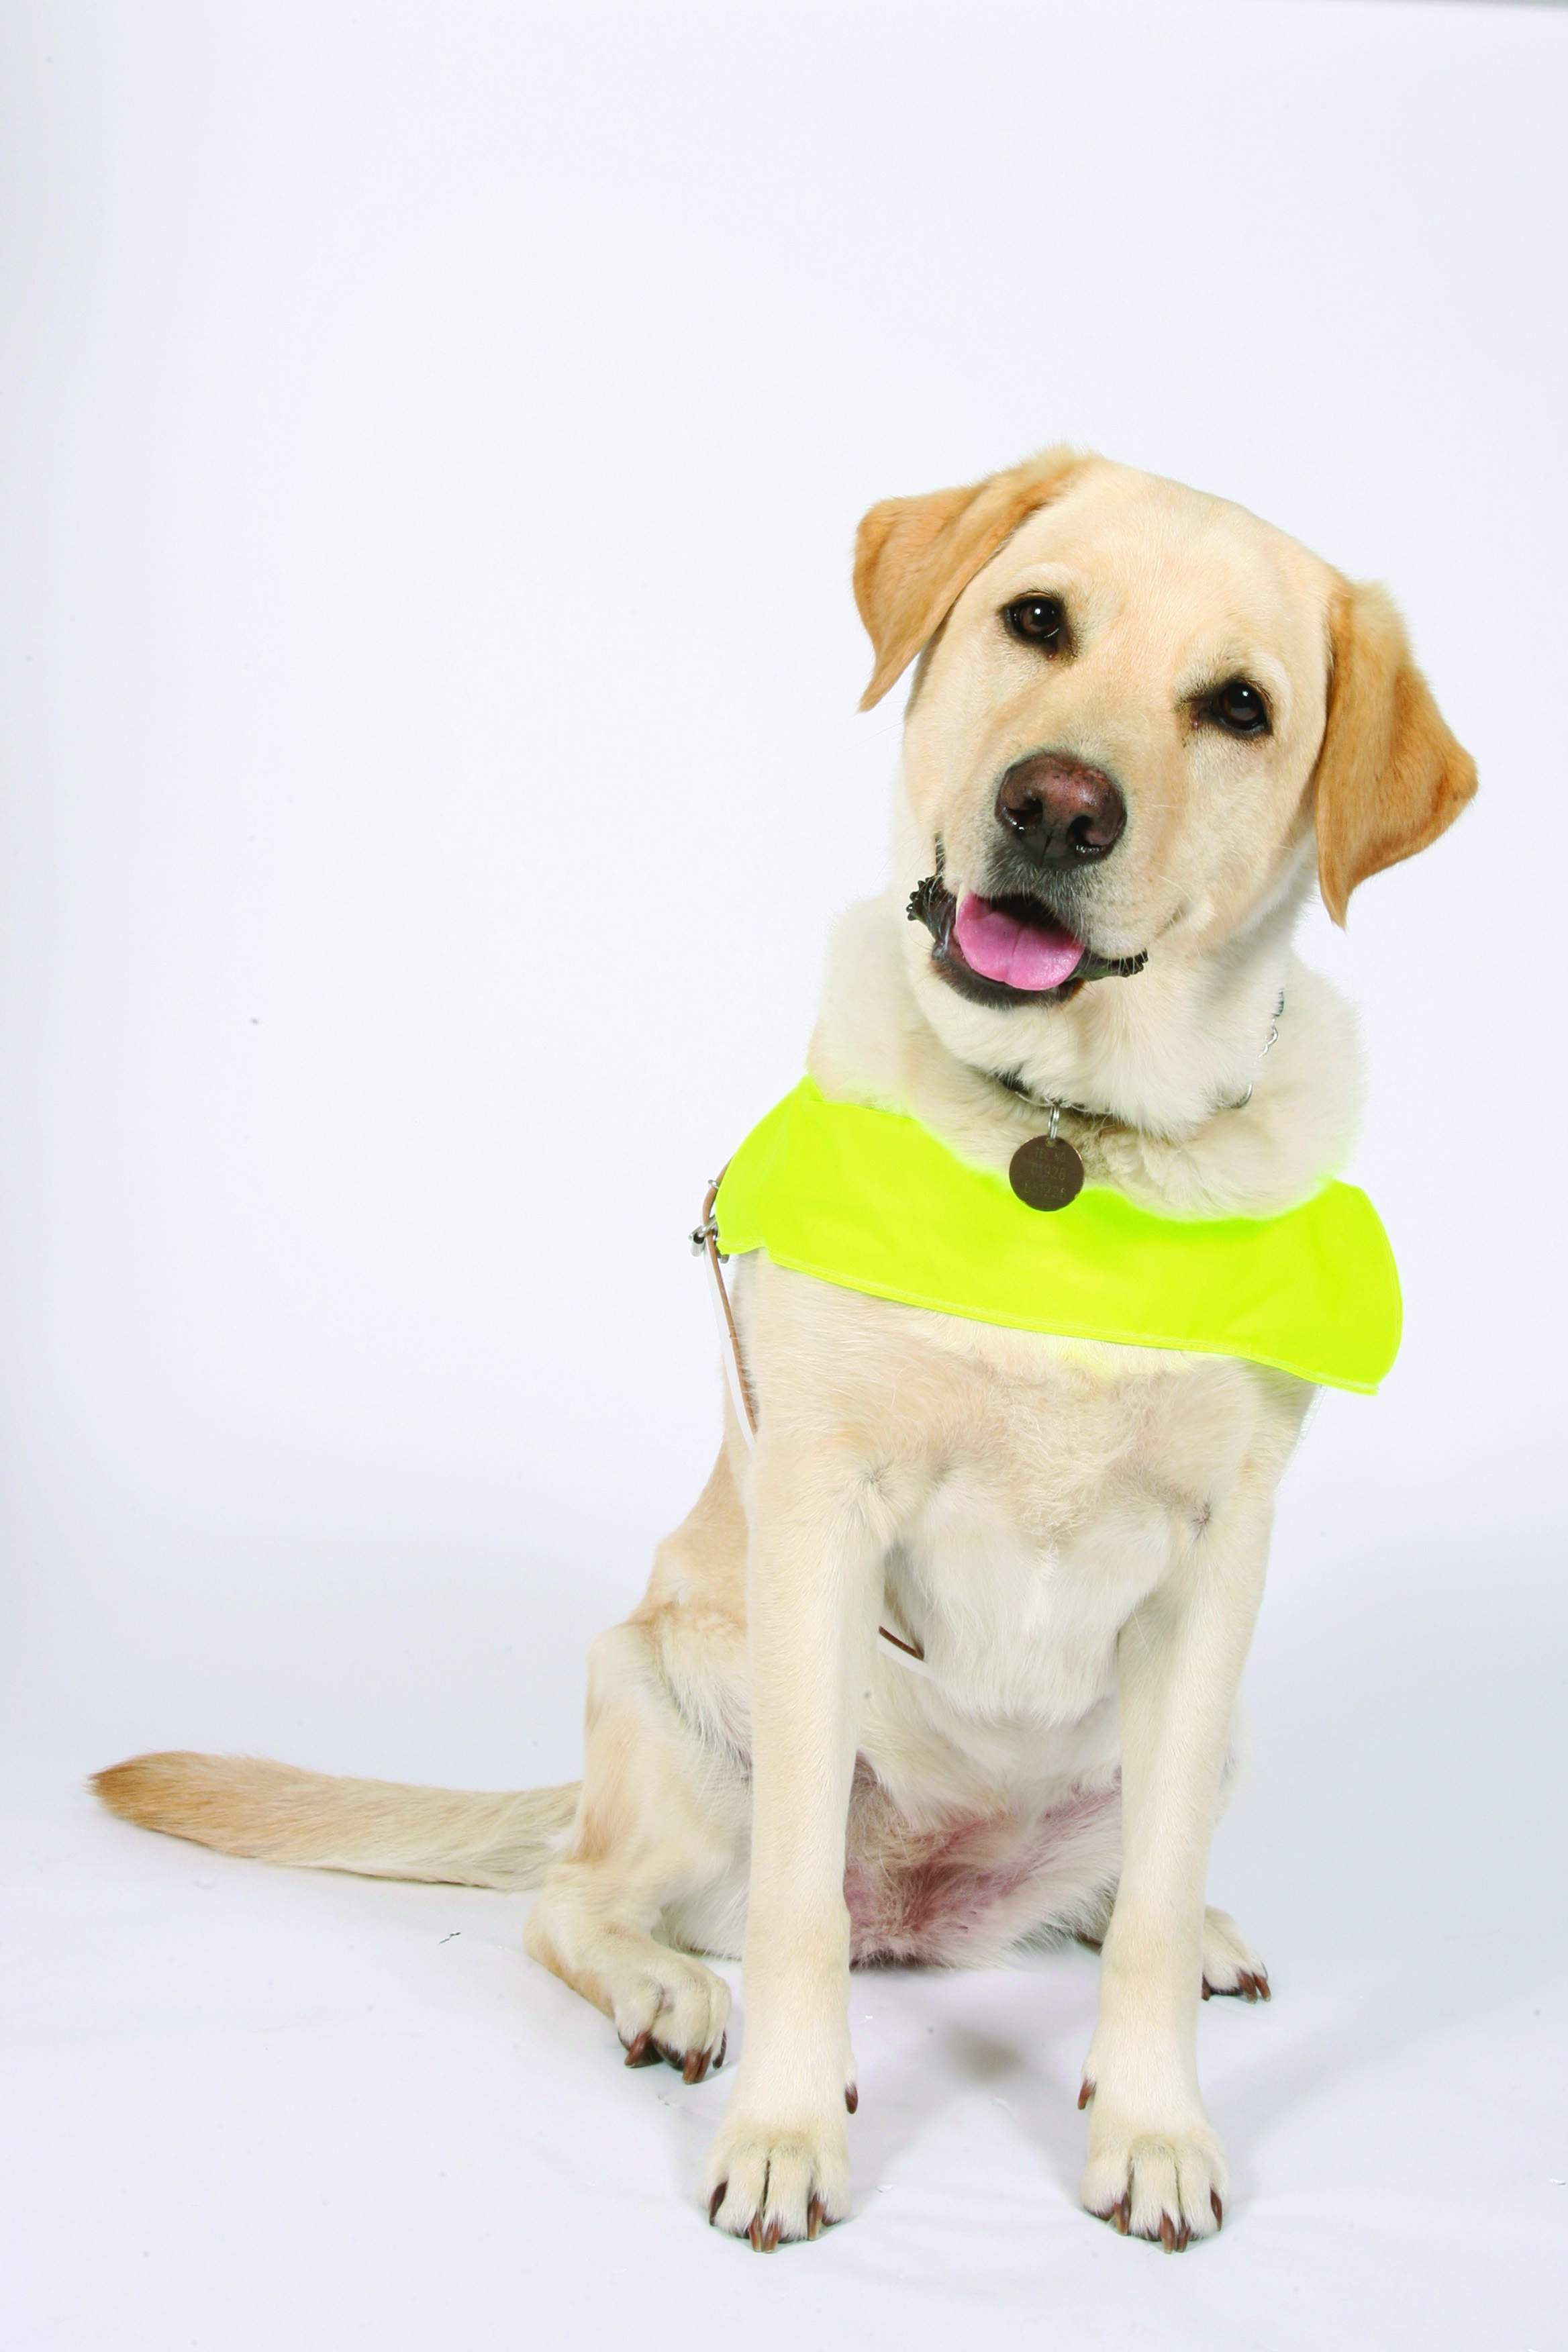 International Guide Dog Day 2018